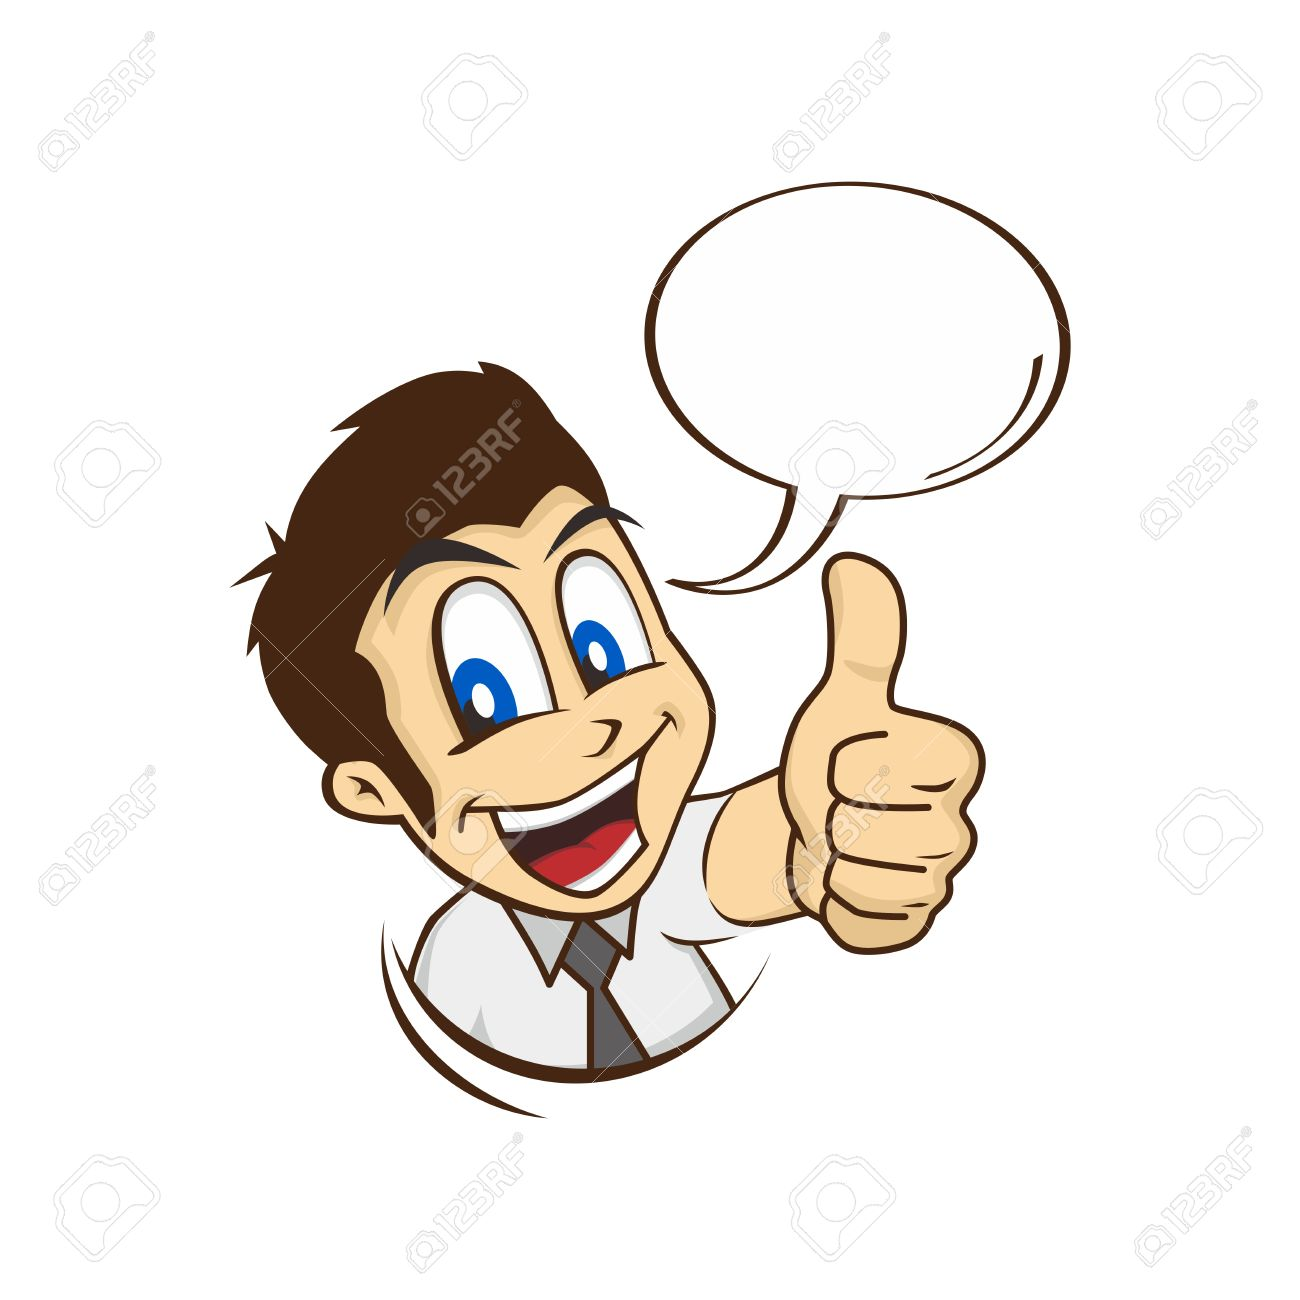 Man thumbs up clipart picture stock Cartoon Guy Thumbs Up Character Vector Illustration Royalty Free ... picture stock